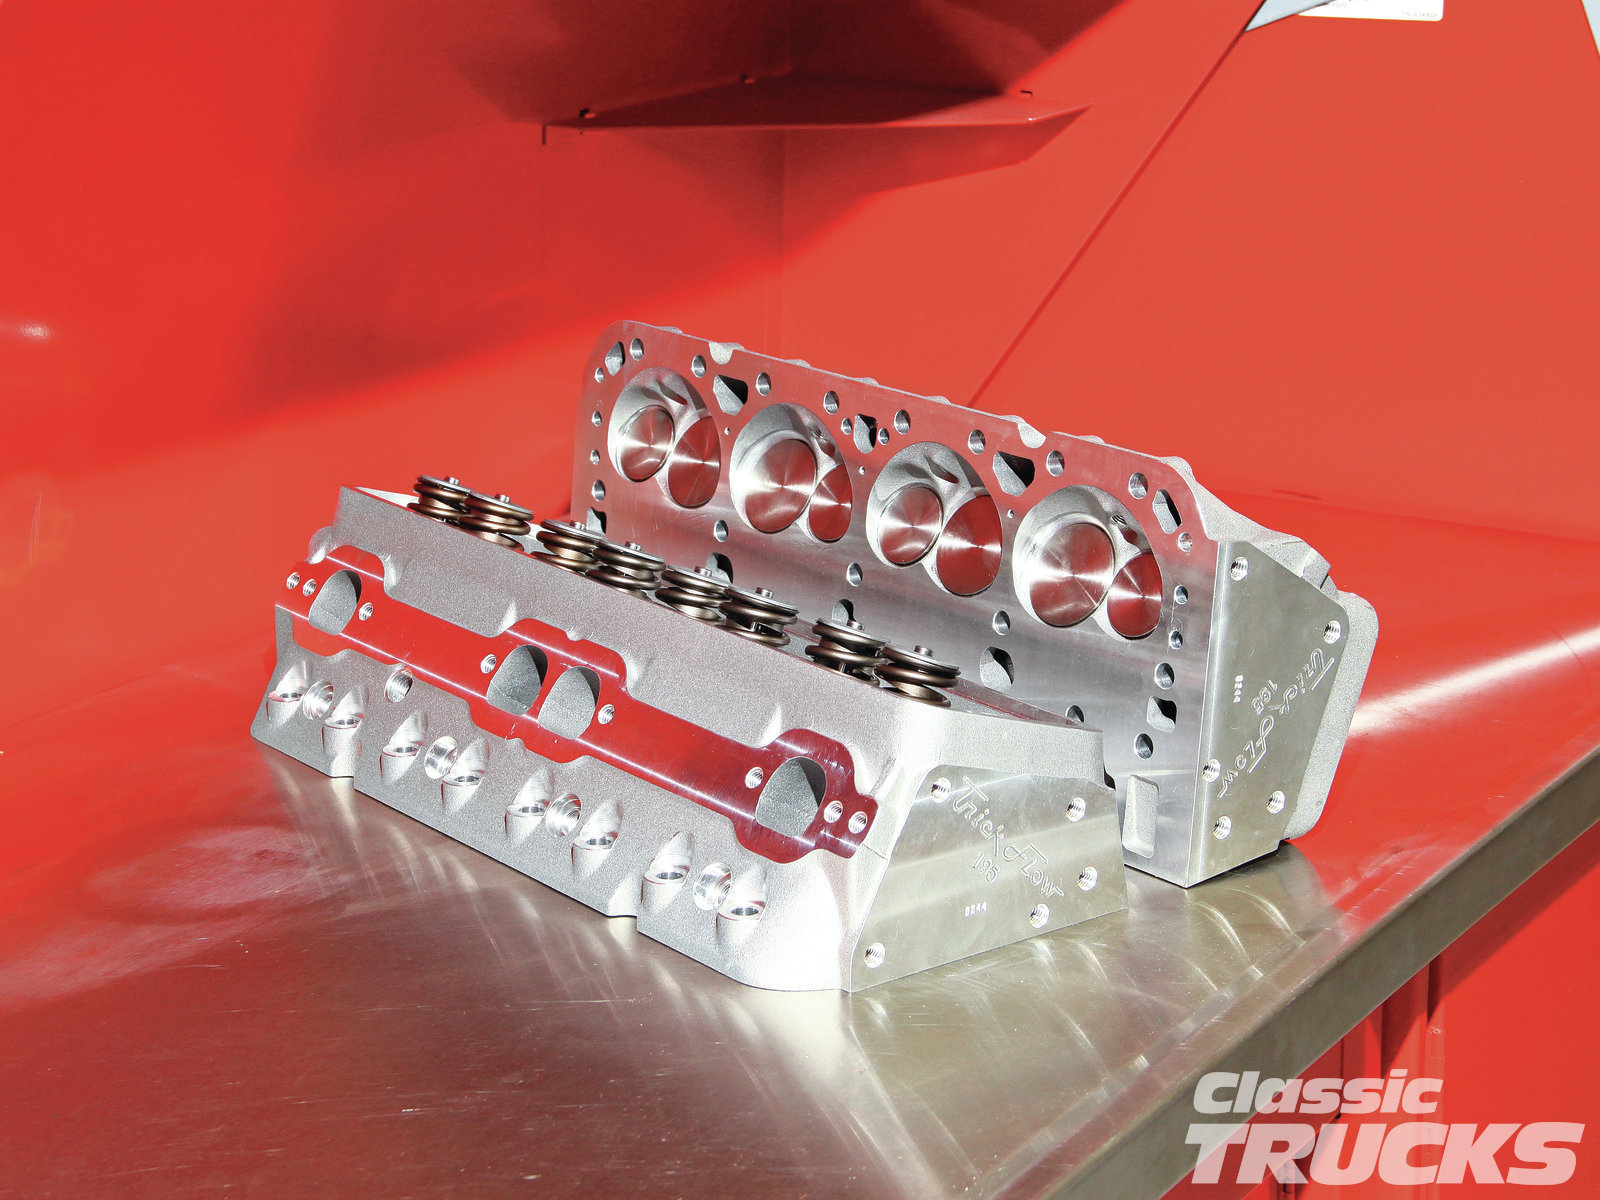 11. I used a set of aluminum Trick Flow heads (part number TFS-30400006) that helped increase the horsepower numbers and reduce the total engine weight. I ordered the Trick Flow heads from Summit Racing along with most of the other engine parts. The heads are 195cc intake runners with 62cc combustion chambers. Since we looked up the piston dish, around (-12cc) and the depth of the piston in the bore when at TDC (-0.032), I was then able to calculate what the compression ratio was roughly going to be by entering the numbers in a compression calculator I found online. I calculated the compression right at 9.6:1 with a 62cc head and a 0.015 Fel-Pro head gasket.